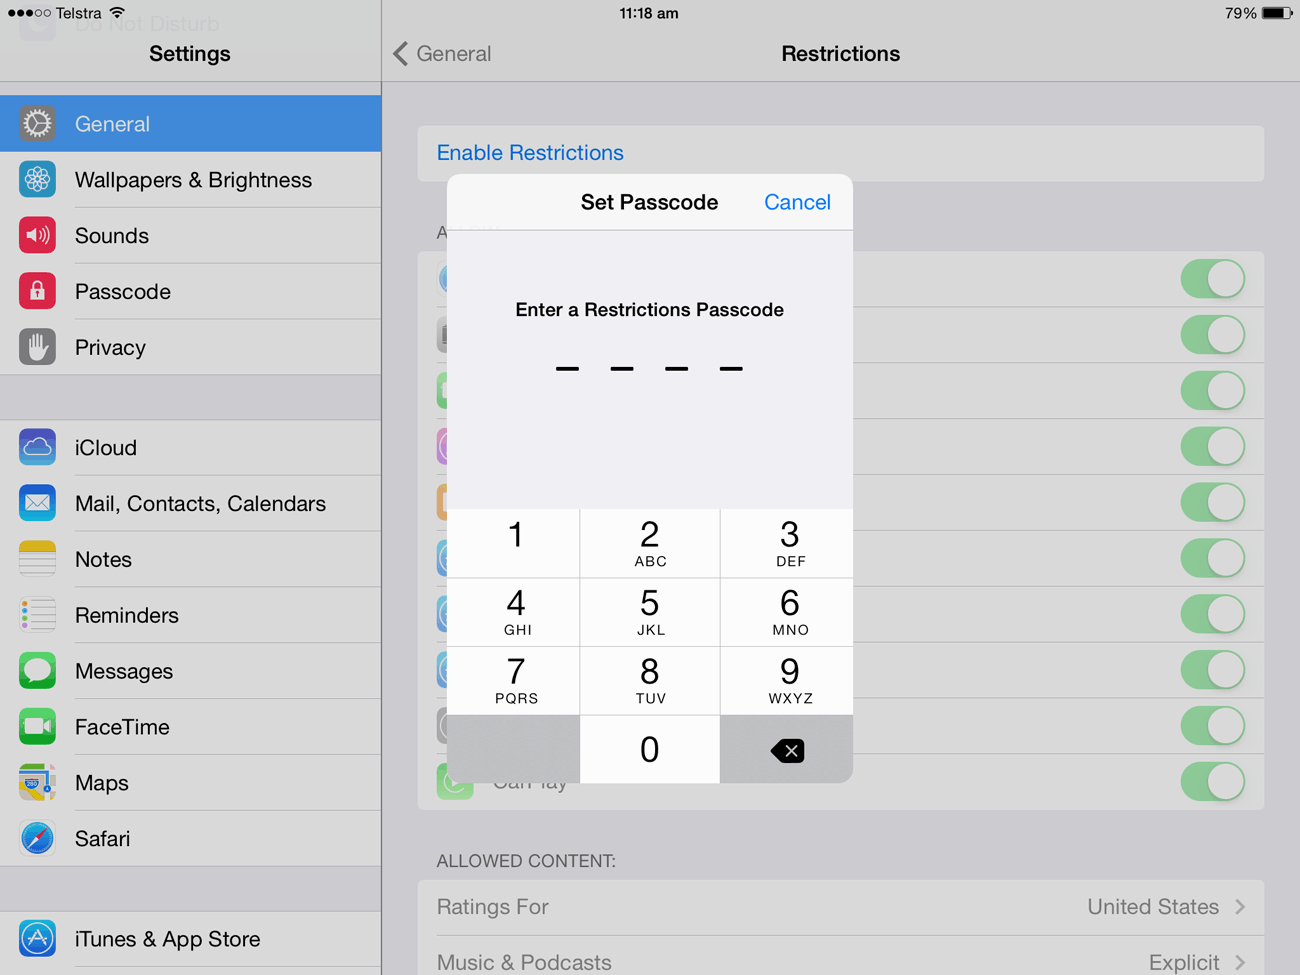 To use the Restrictions feature, you first need to enable it by setting a passcode.